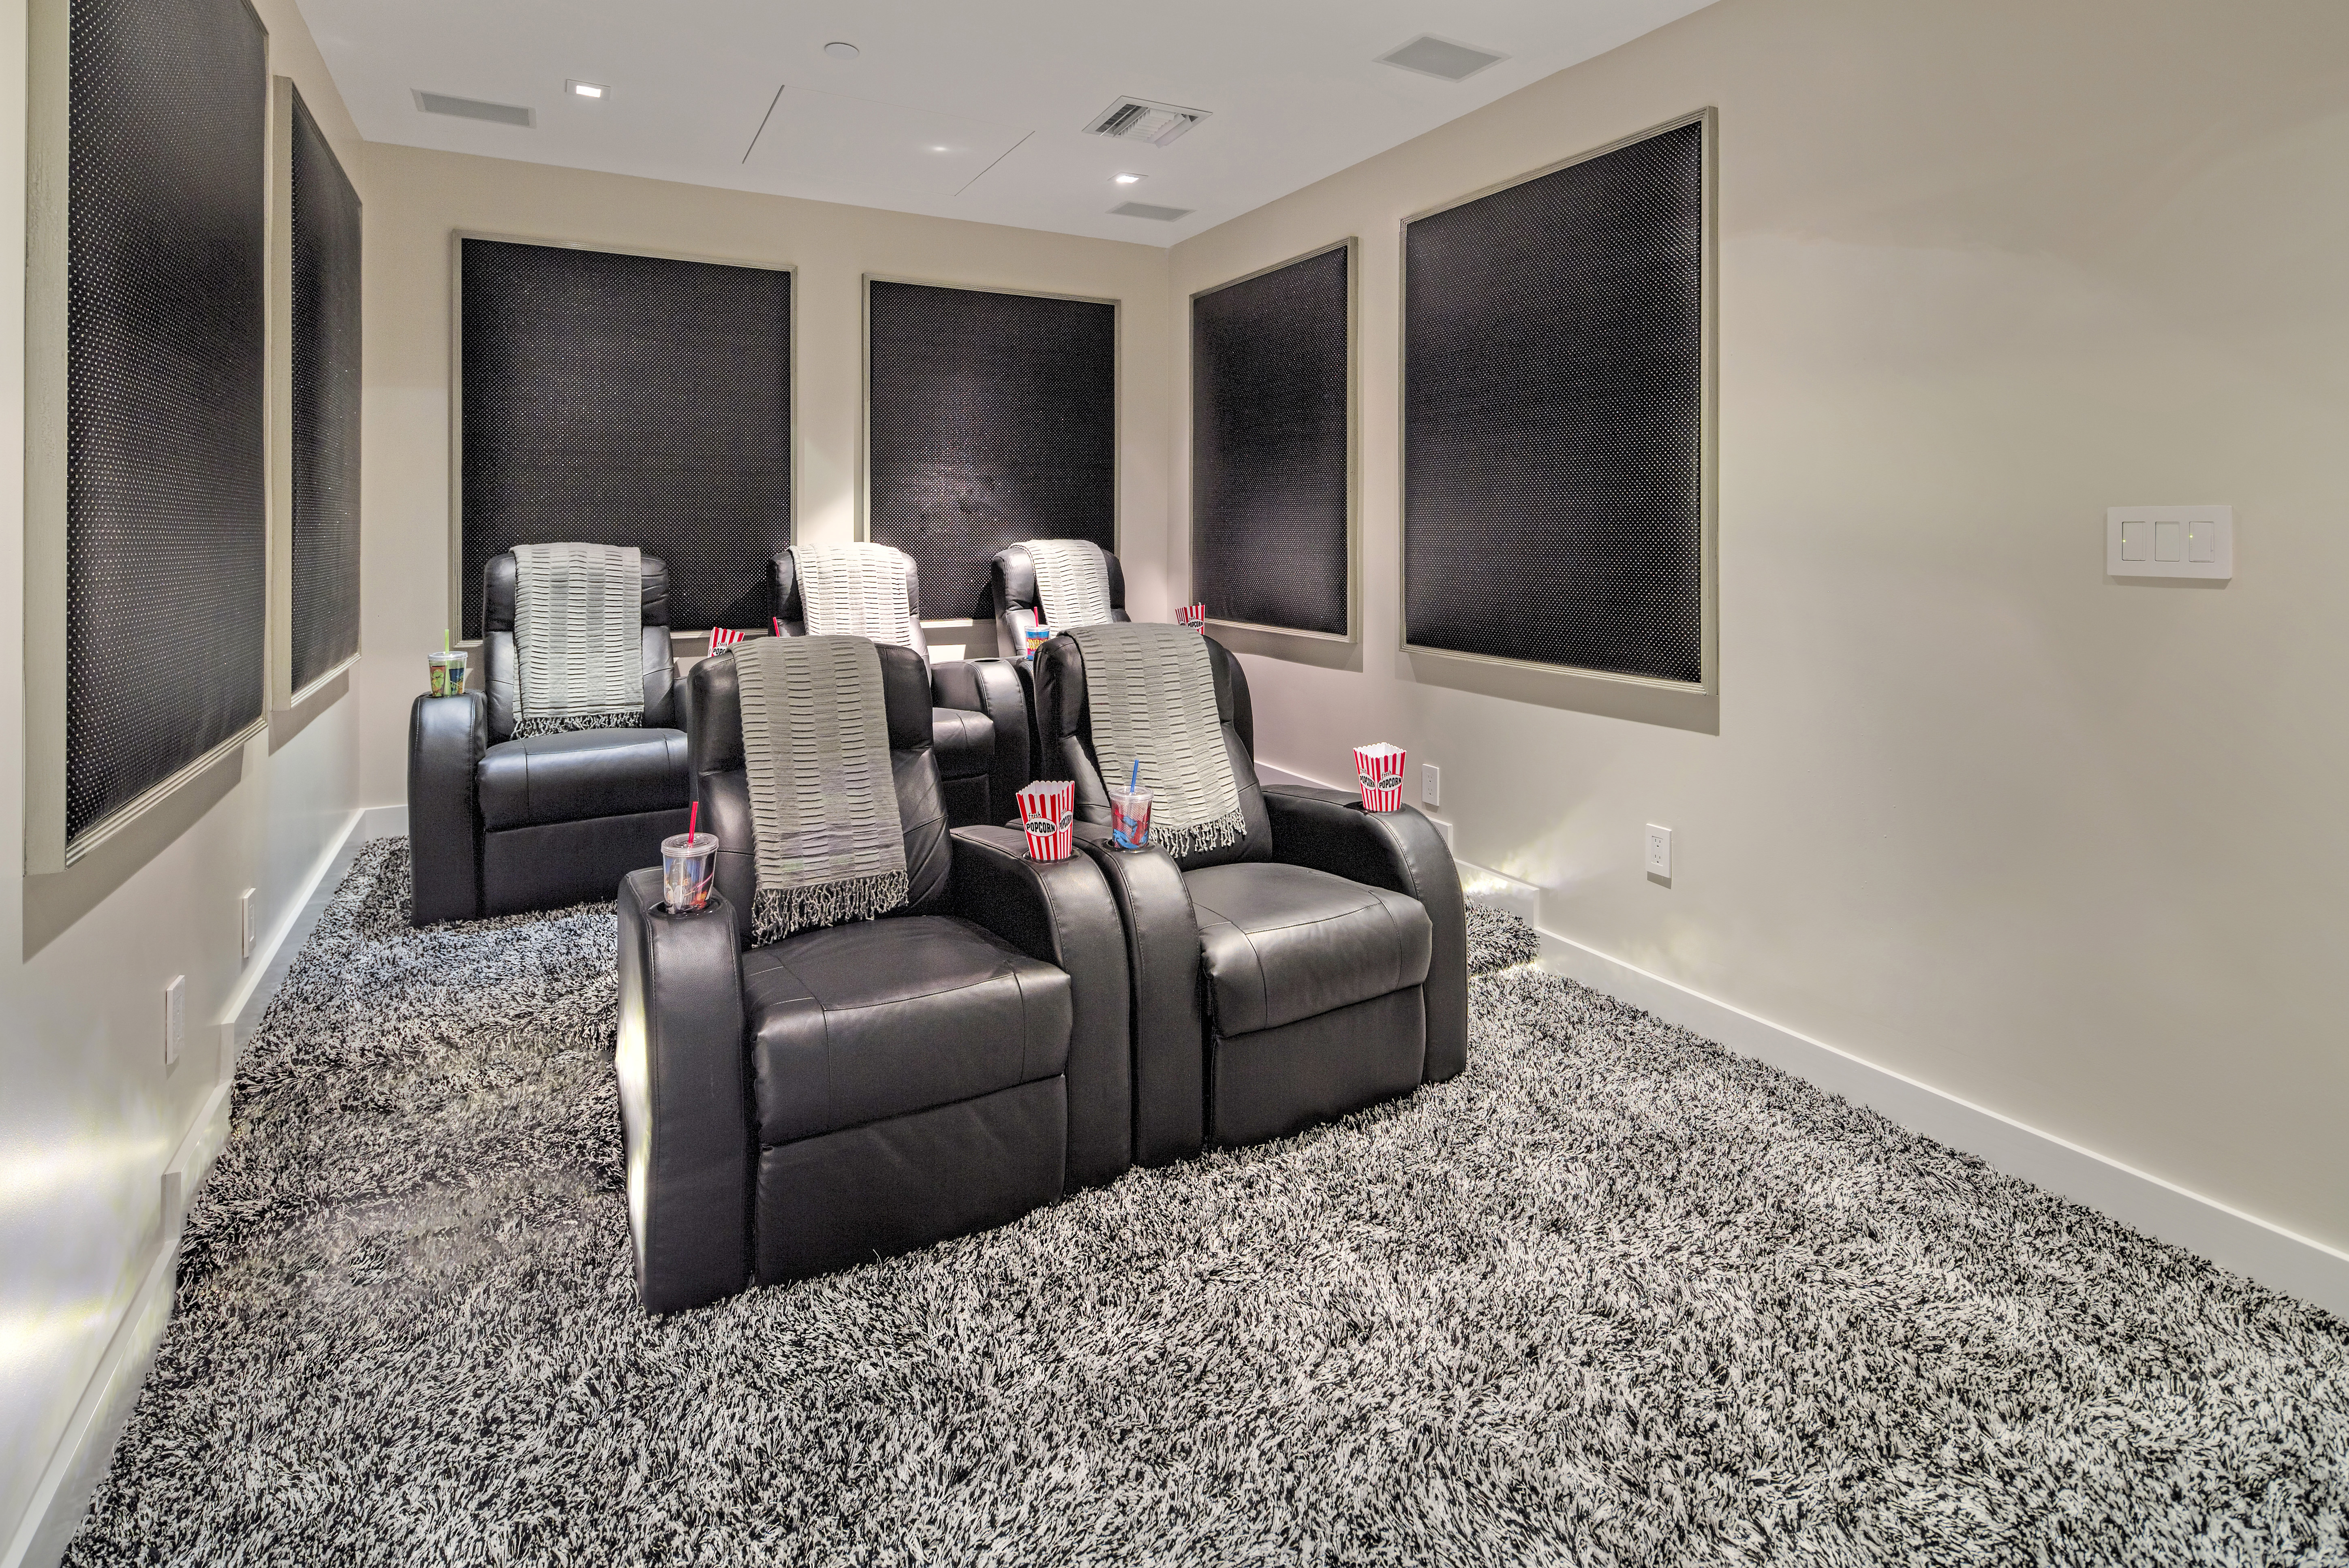 900 Biscayne Bay Penthouse 6307 Private Cinema